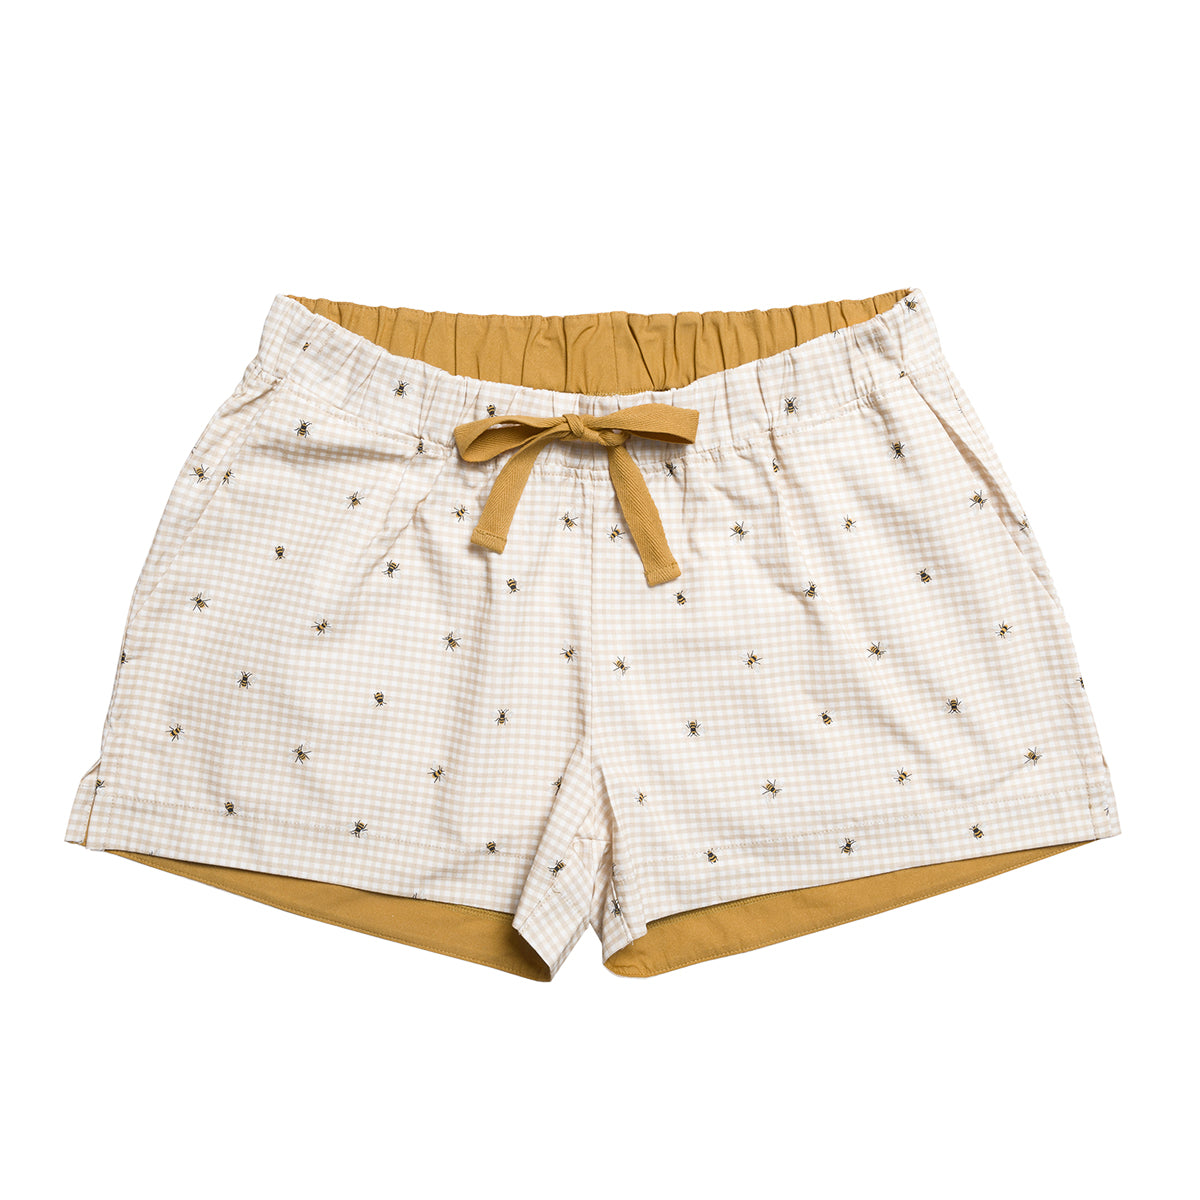 Bees Pyjama Shorts by Sophie Allport